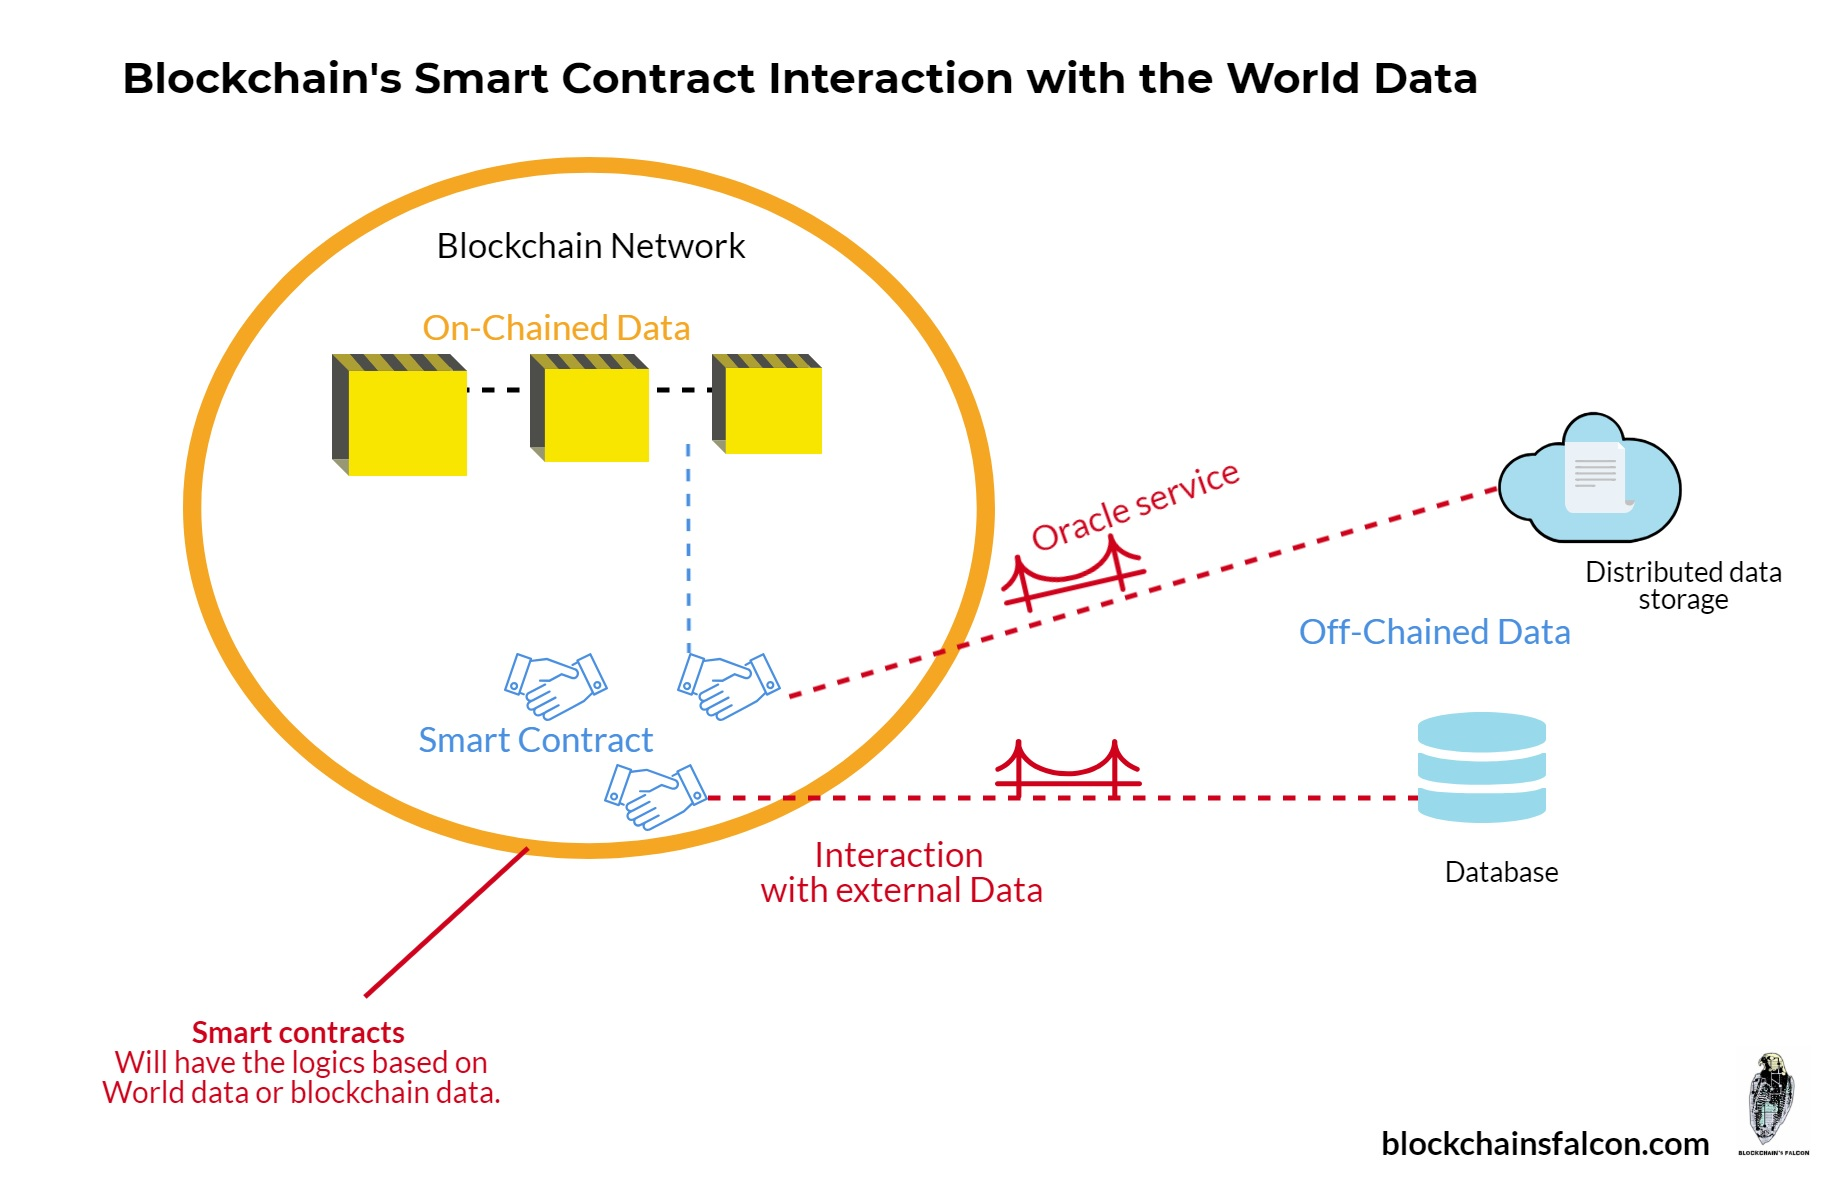 Smartcontract interaction with external data